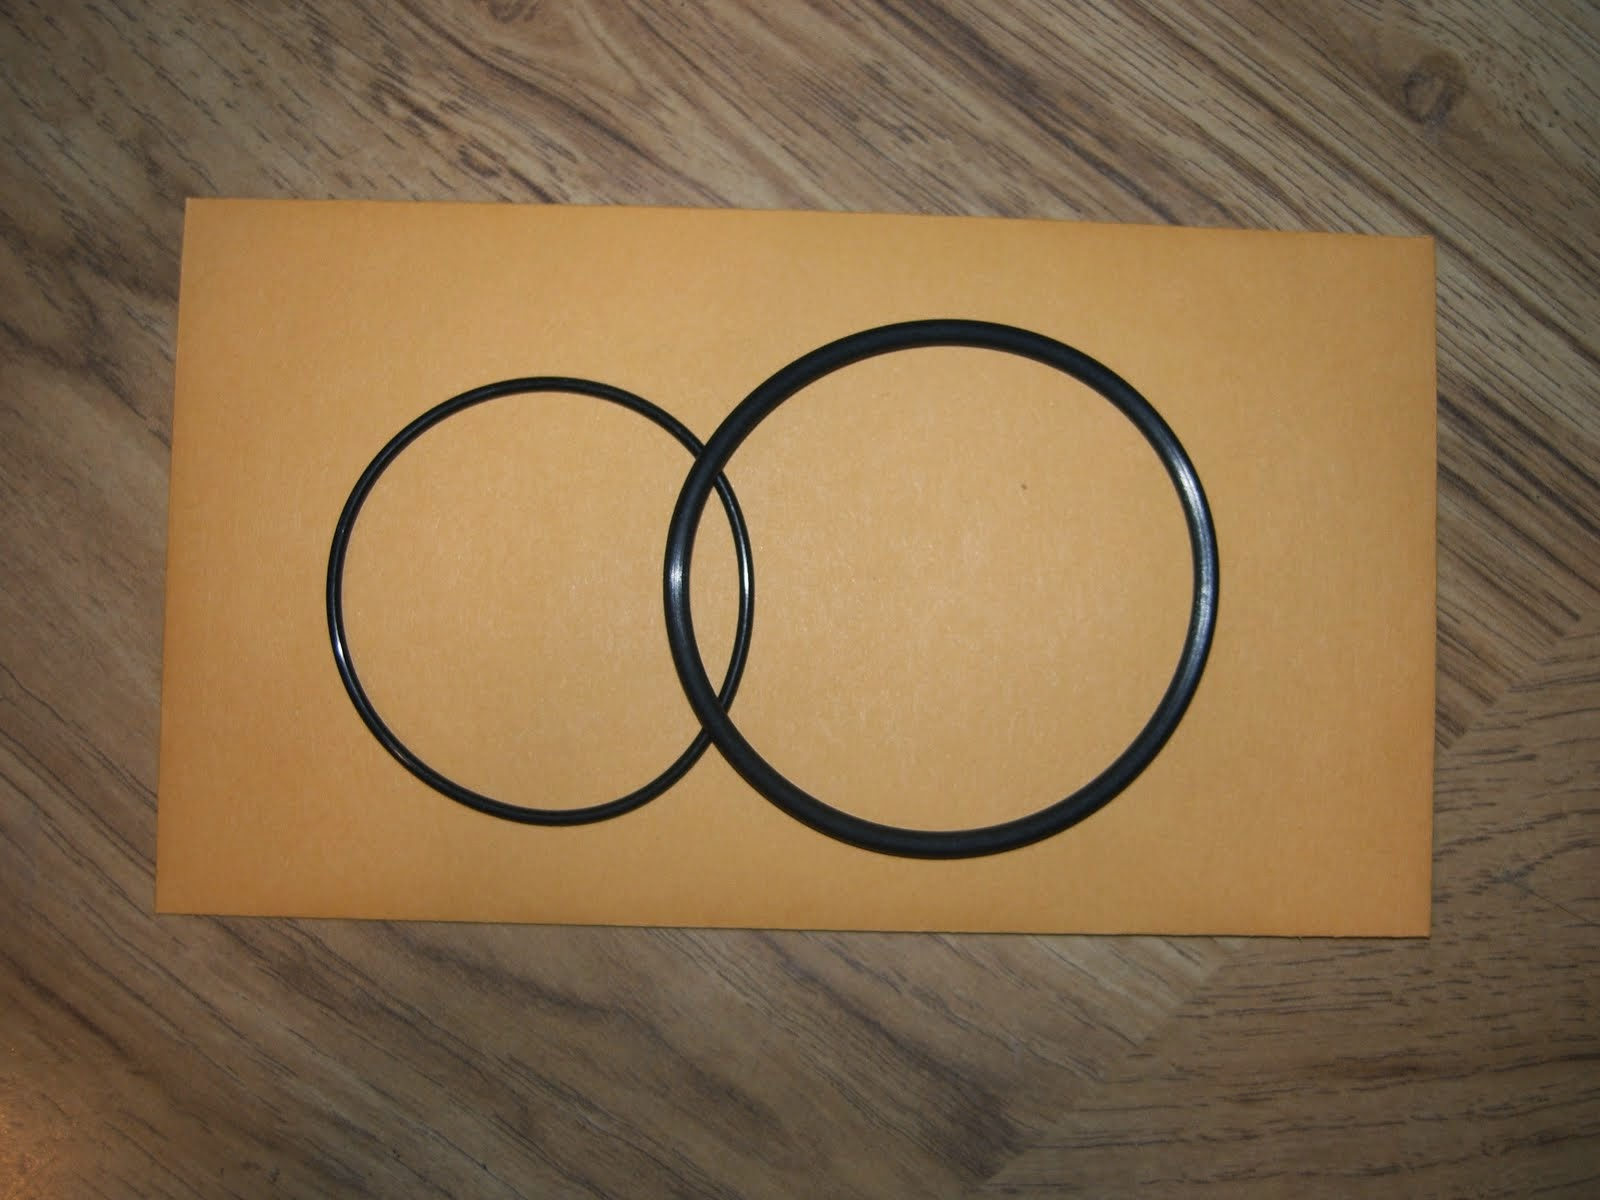 HONDA CA72 CA77 CB77 (EARLIER MODEL) OIL FILTER GASKET O-RING KIT (CB-FG003)